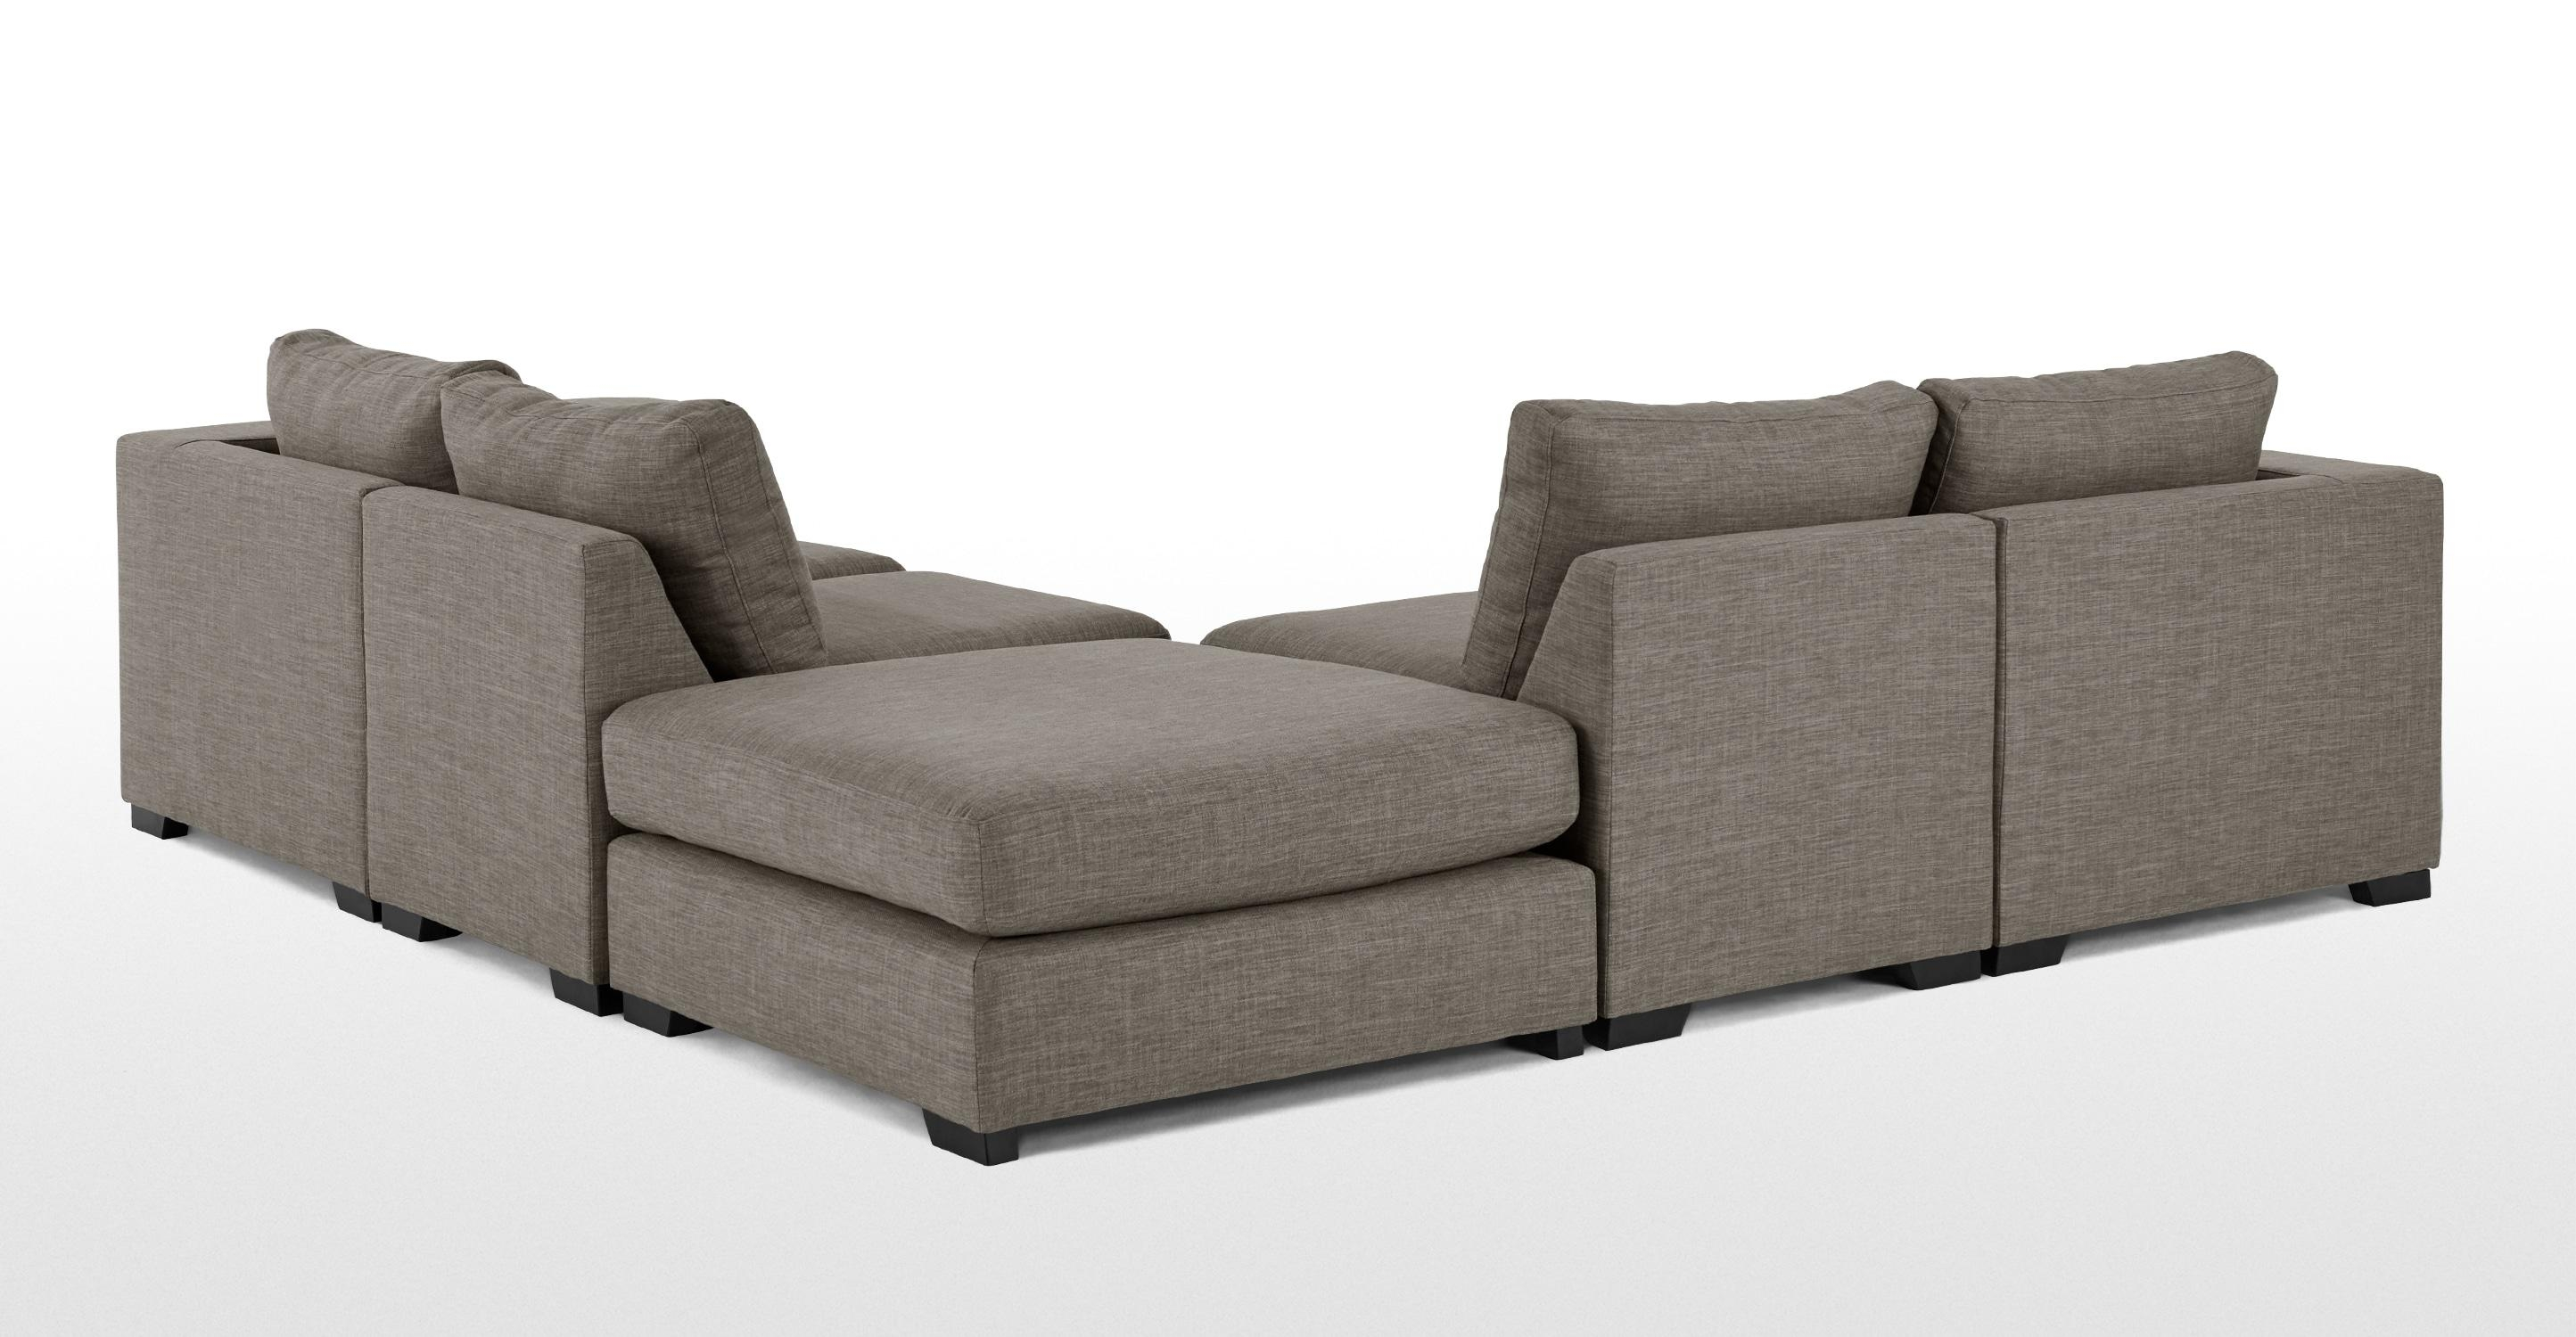 Mortimer Modular Corner Sofa Group, Chalk Grey | Made Pertaining To Modular Corner Sofas (View 10 of 20)